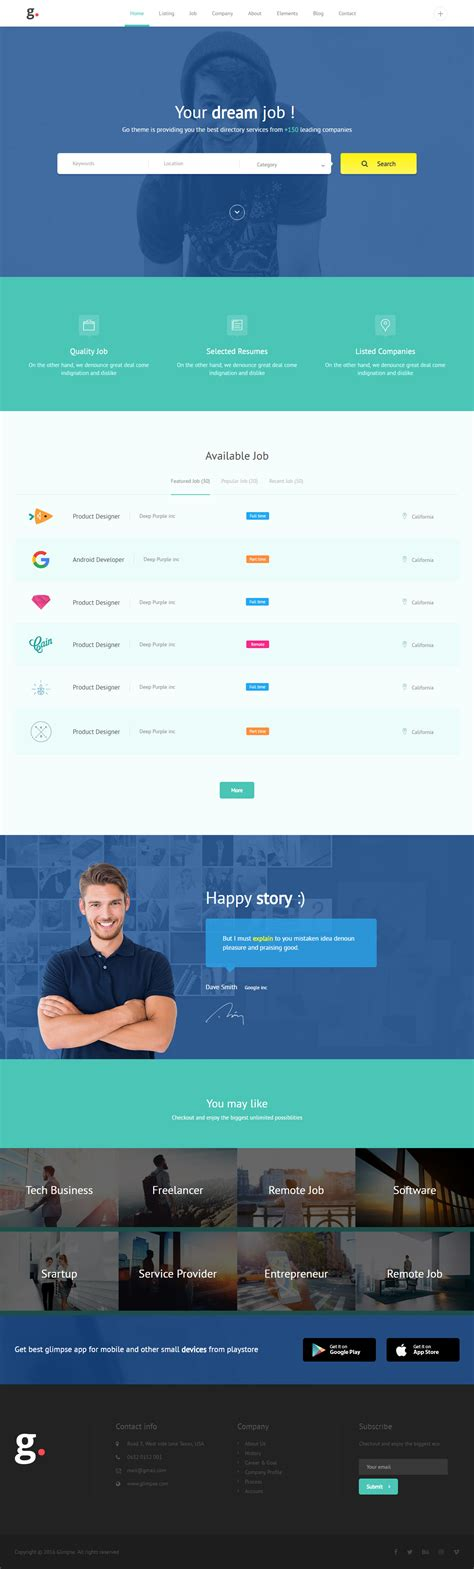 10 Best Html5 Job Board Website Templates 2017 Responsive Miracle Board Website Template